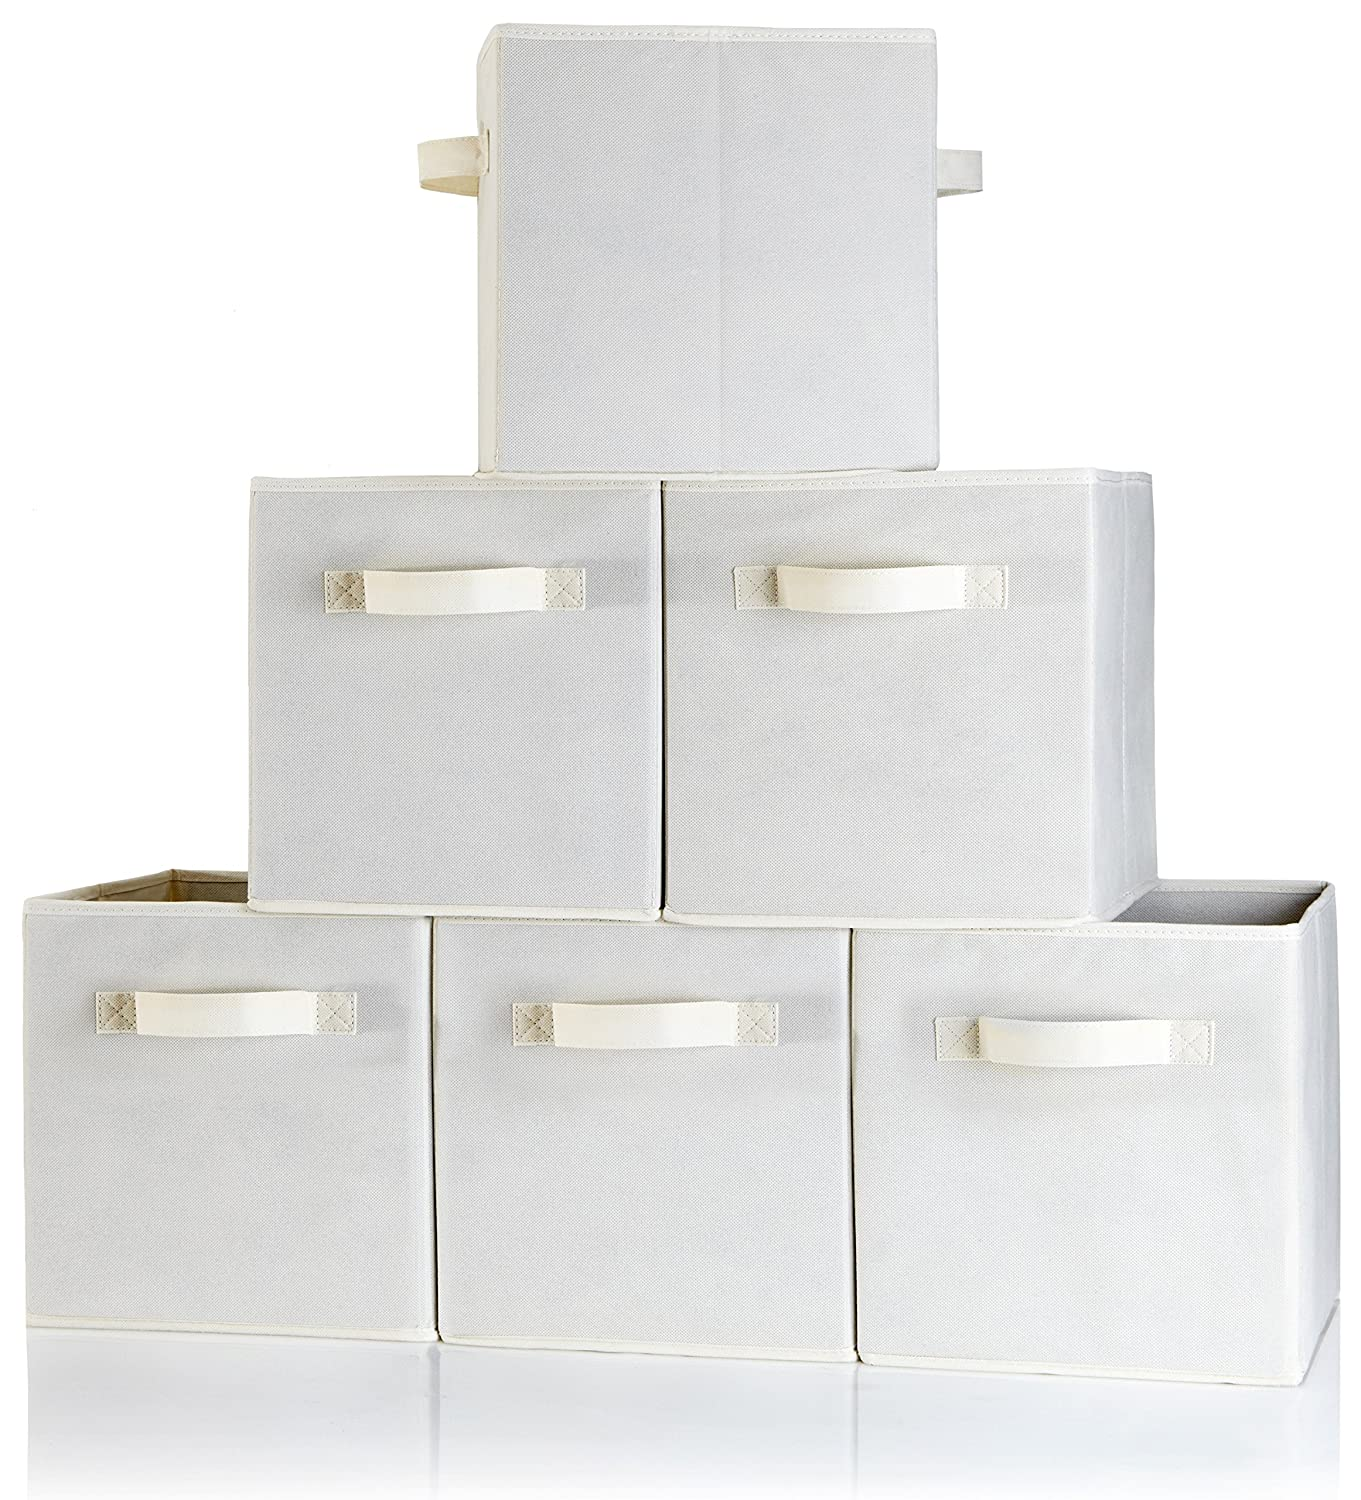 Ordinaire Amazon.com: Storage Cubes Dual Handle   Set Of 6 Beige Storage Bins For Cube  Storage   Foldable Fabric Storage Box Containers With Two Handles And ...